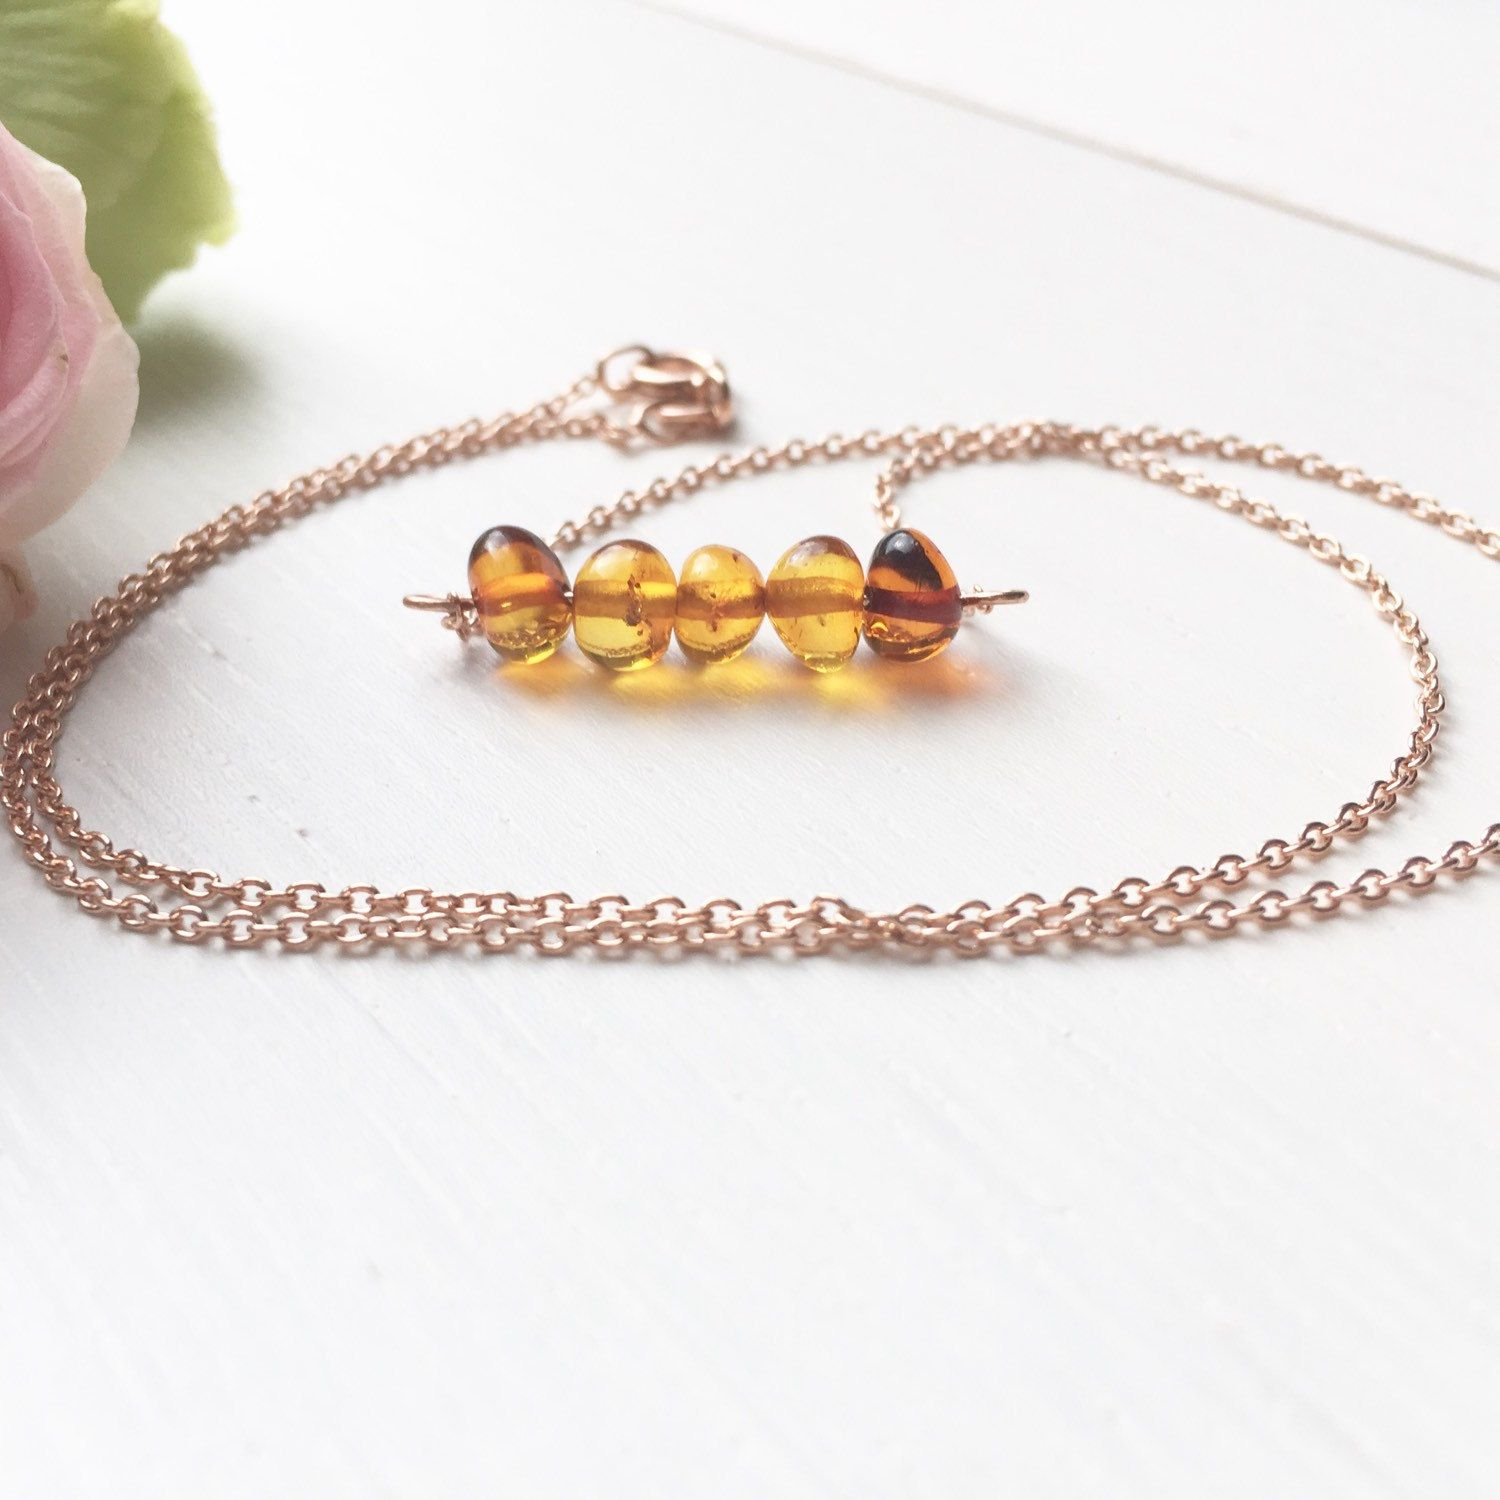 Baltic amber bar on a rose gold plated chain. A statement piece that is delicate & feminine.